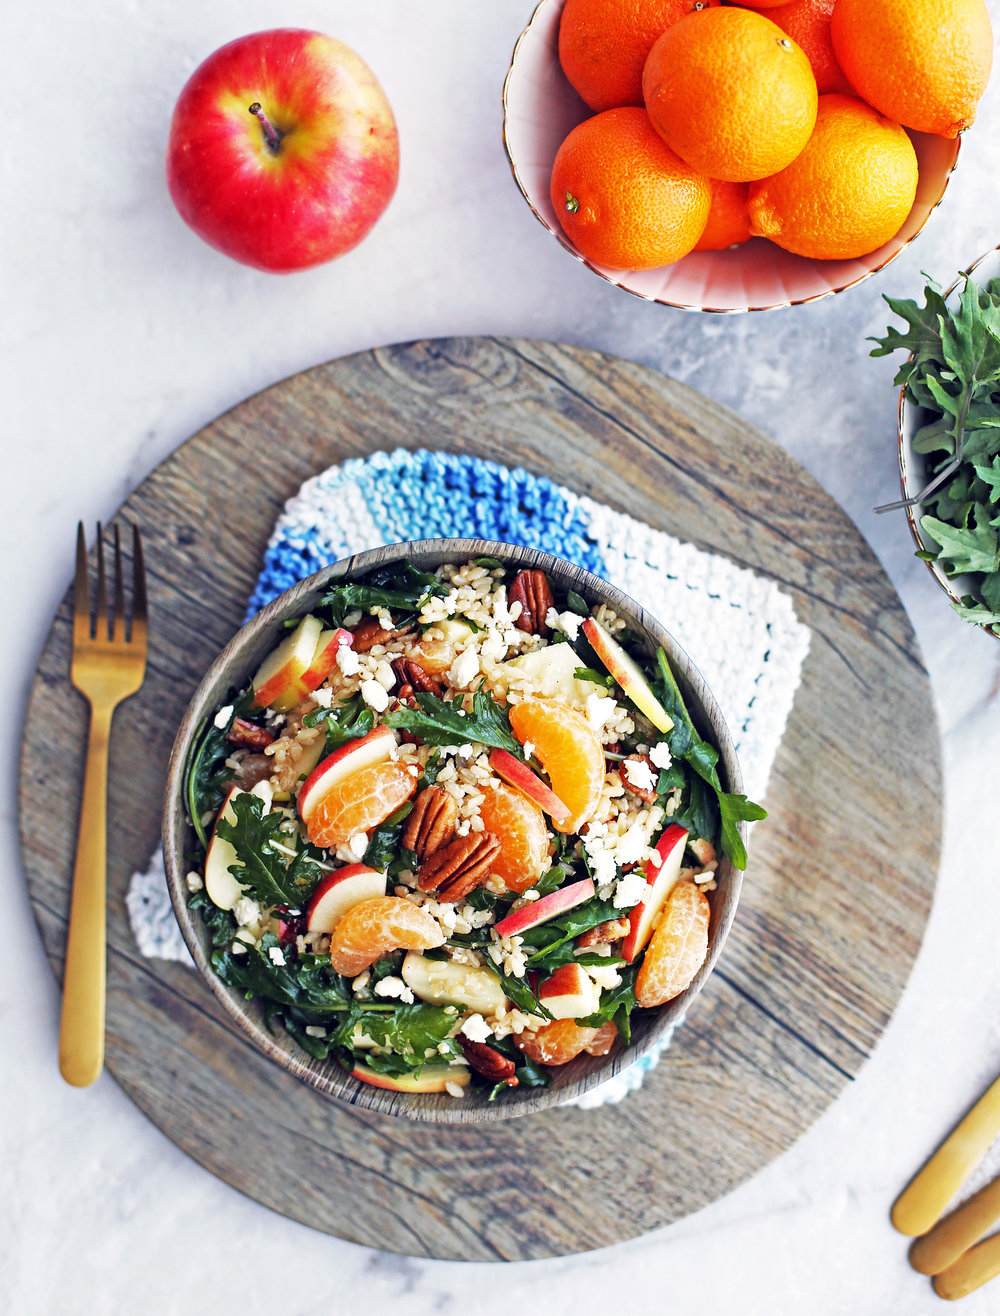 Overhead view of baby kale brown rice salad with feta, apples, and clementines in a wooden bowl, with fork to its side, on a large wooden platter.